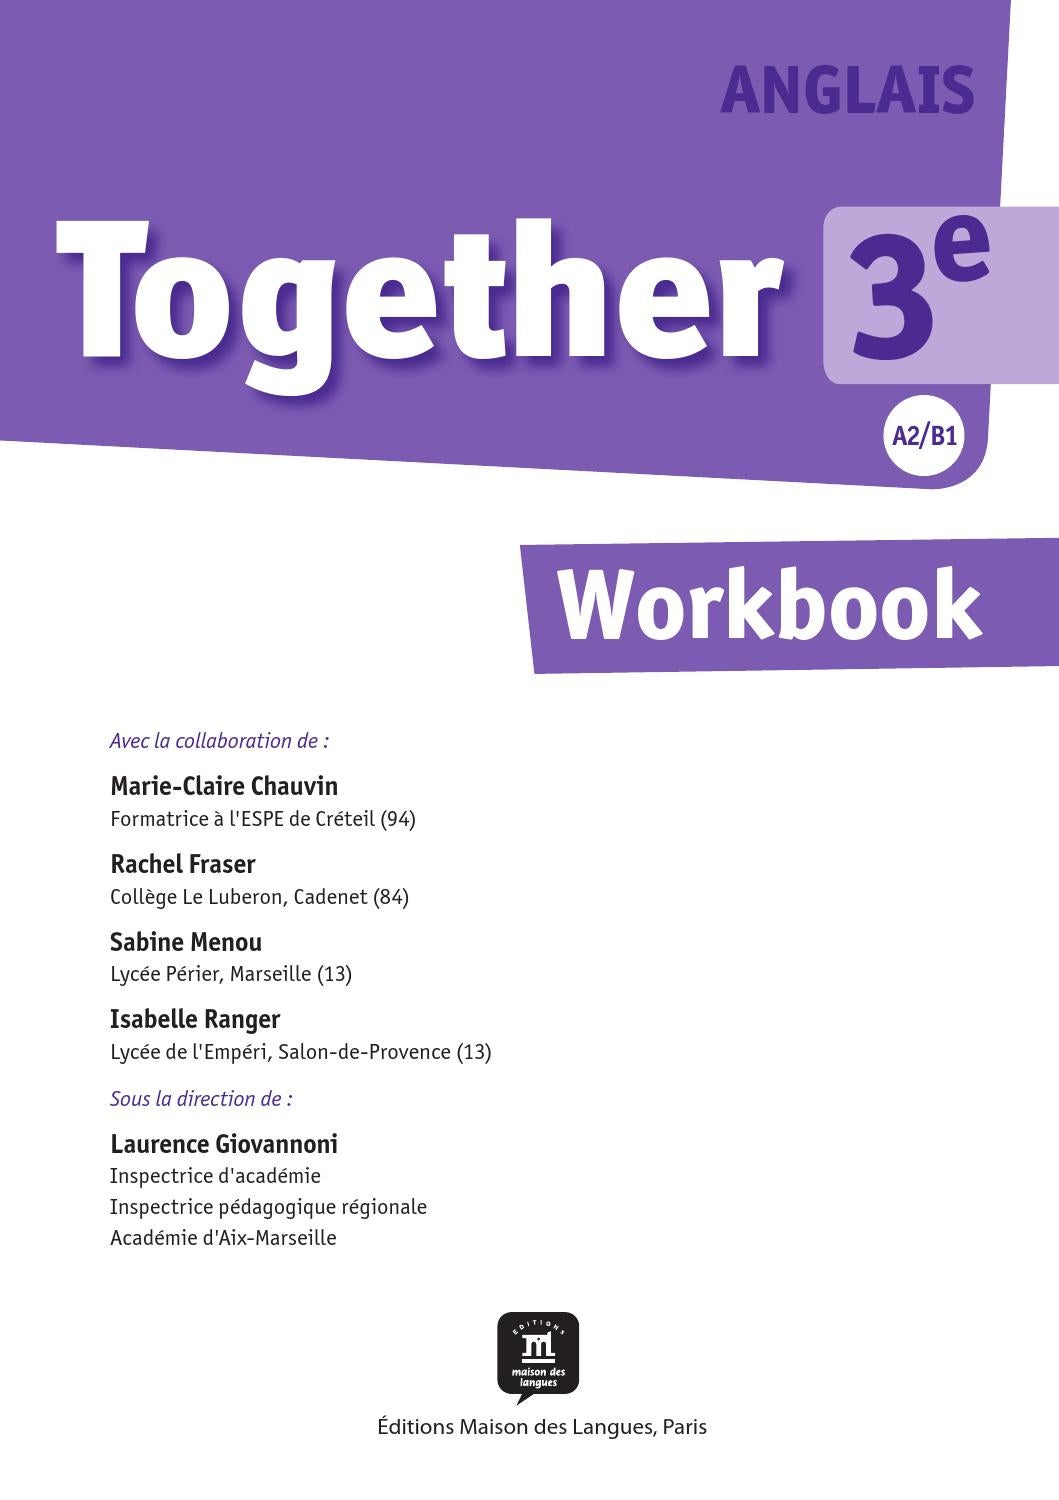 Together 3e workbook ditions maison des langues by - Lycee viala lacoste salon de provence ...